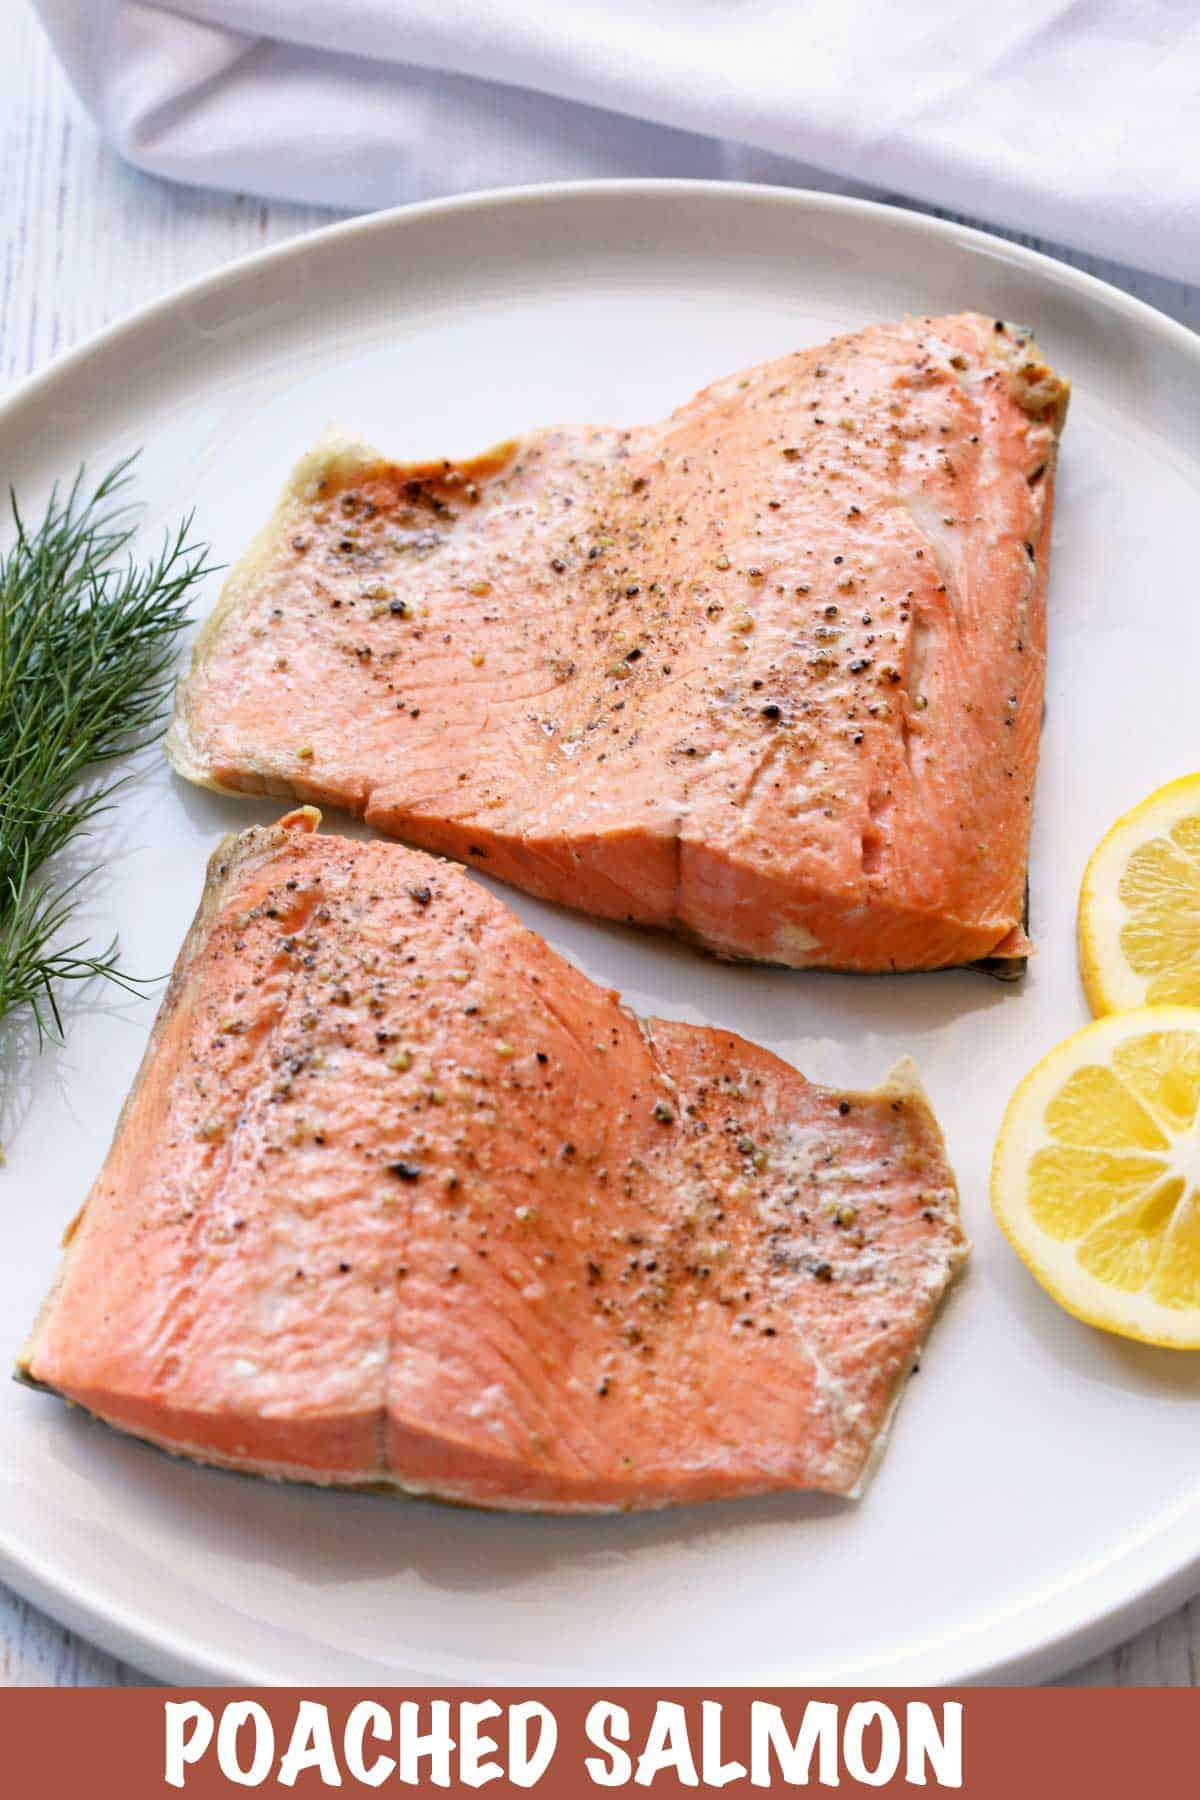 Poached salmon served with lemon slices and dill.